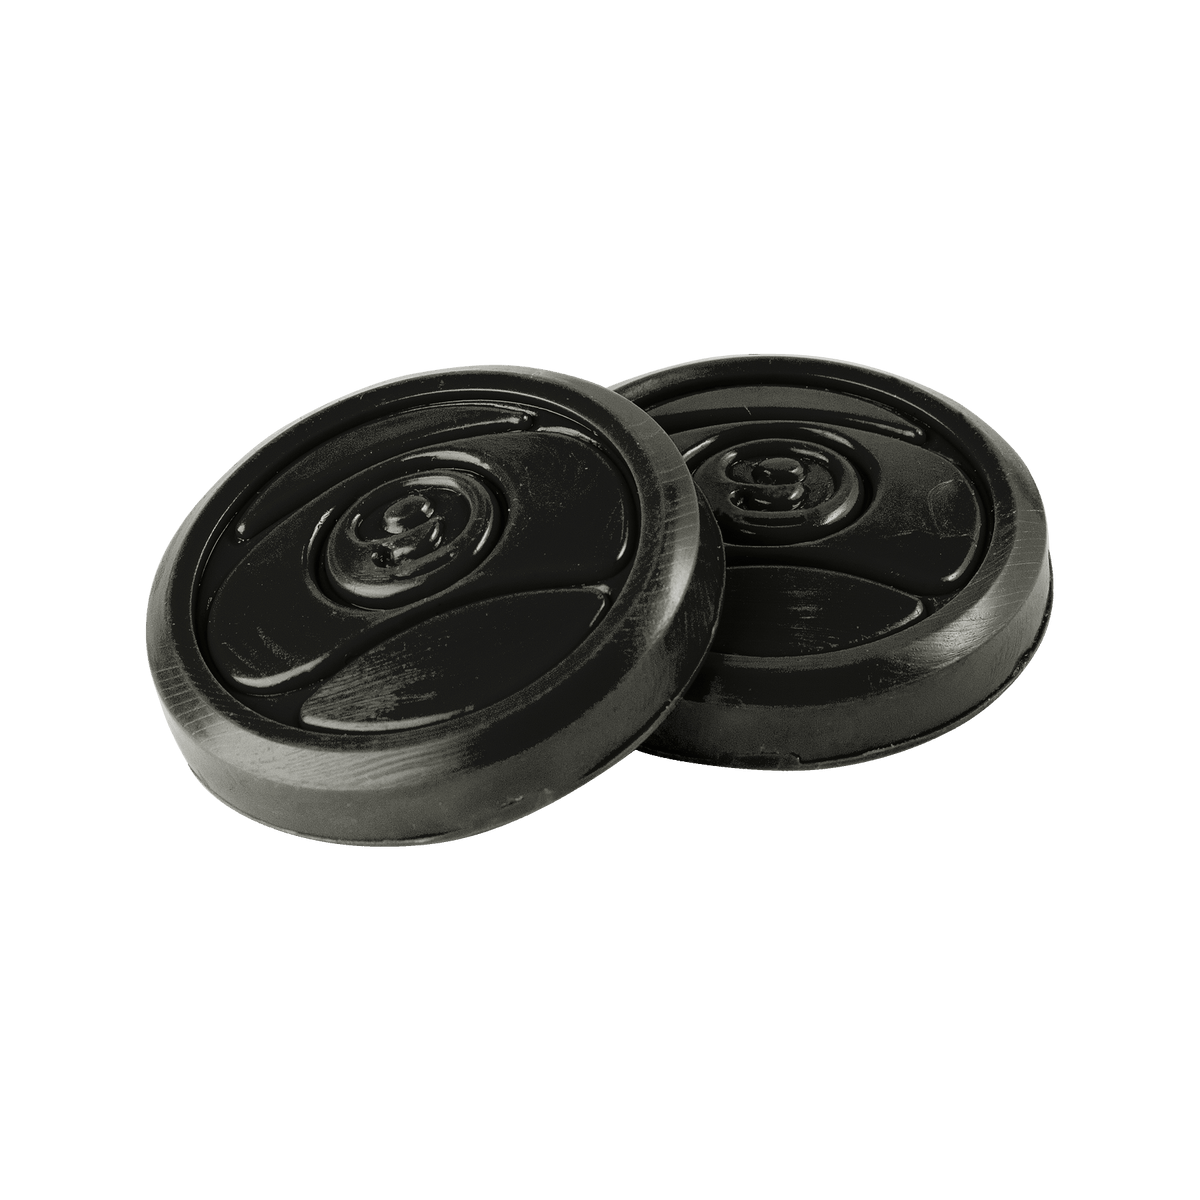 9 Ball Pucks Black